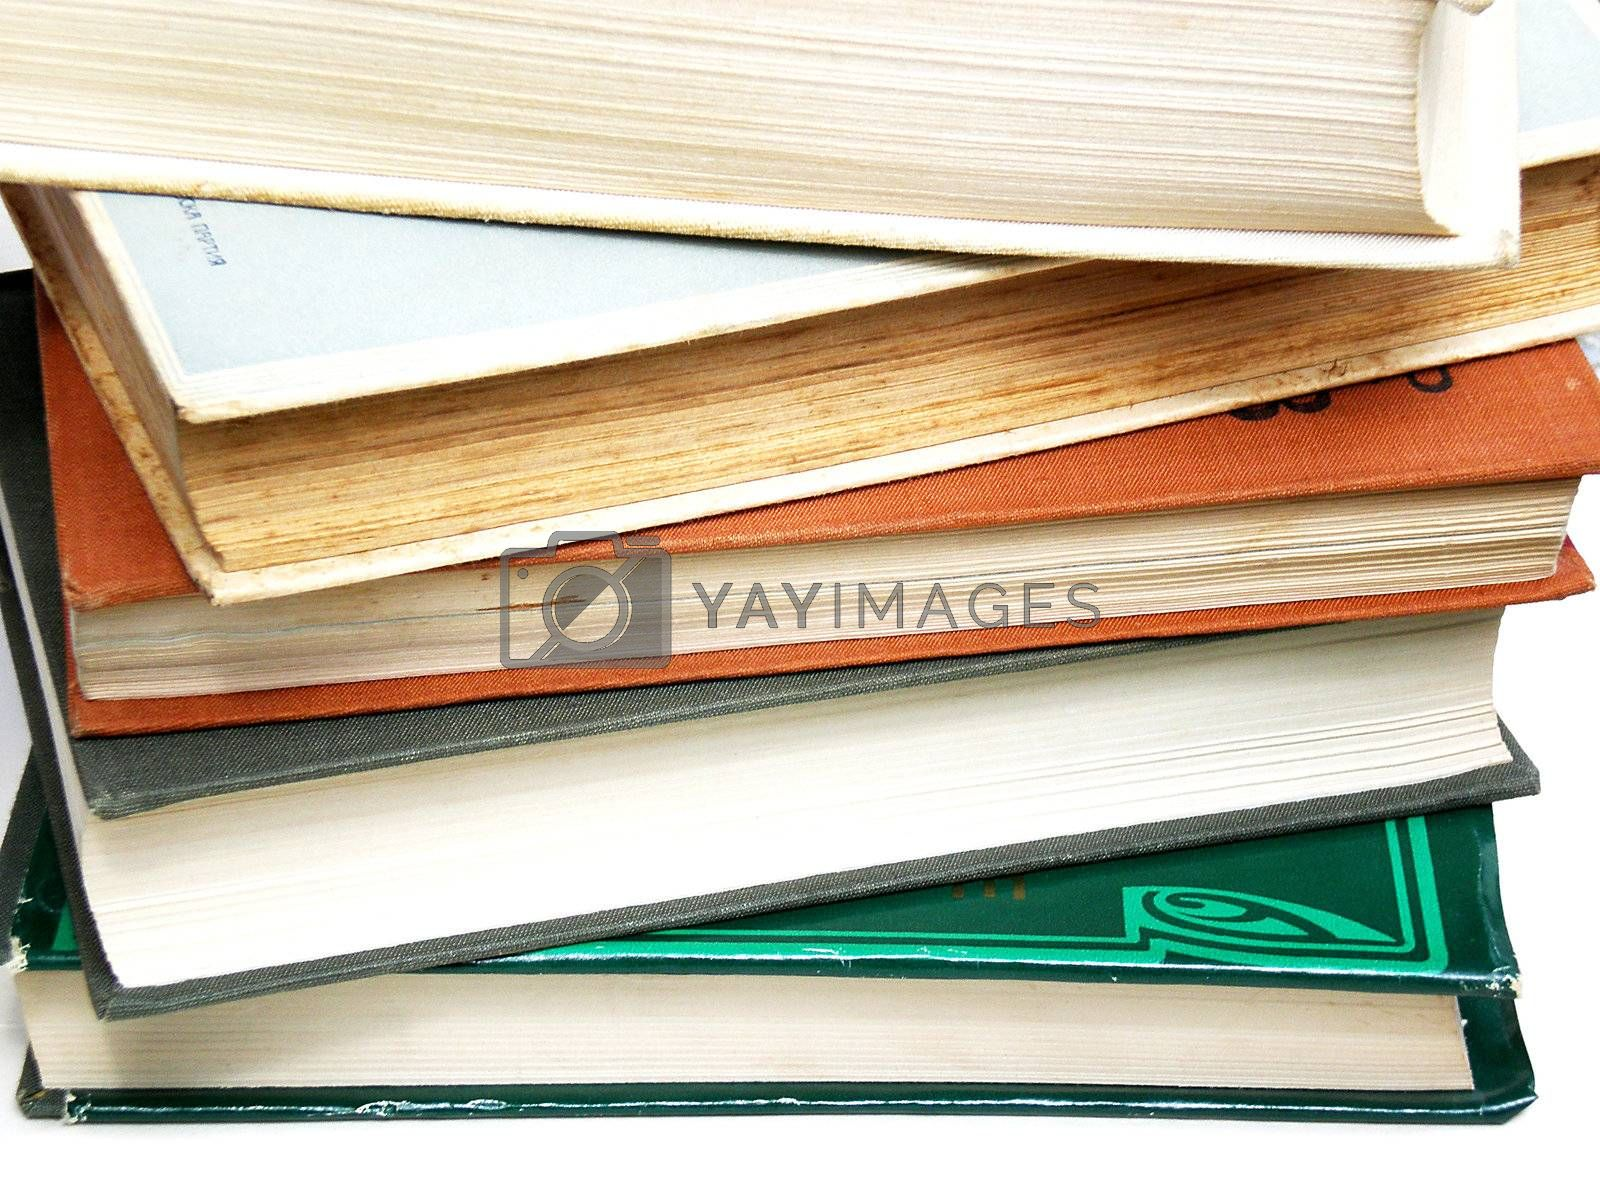 Royalty free image of books by Dessie_bg